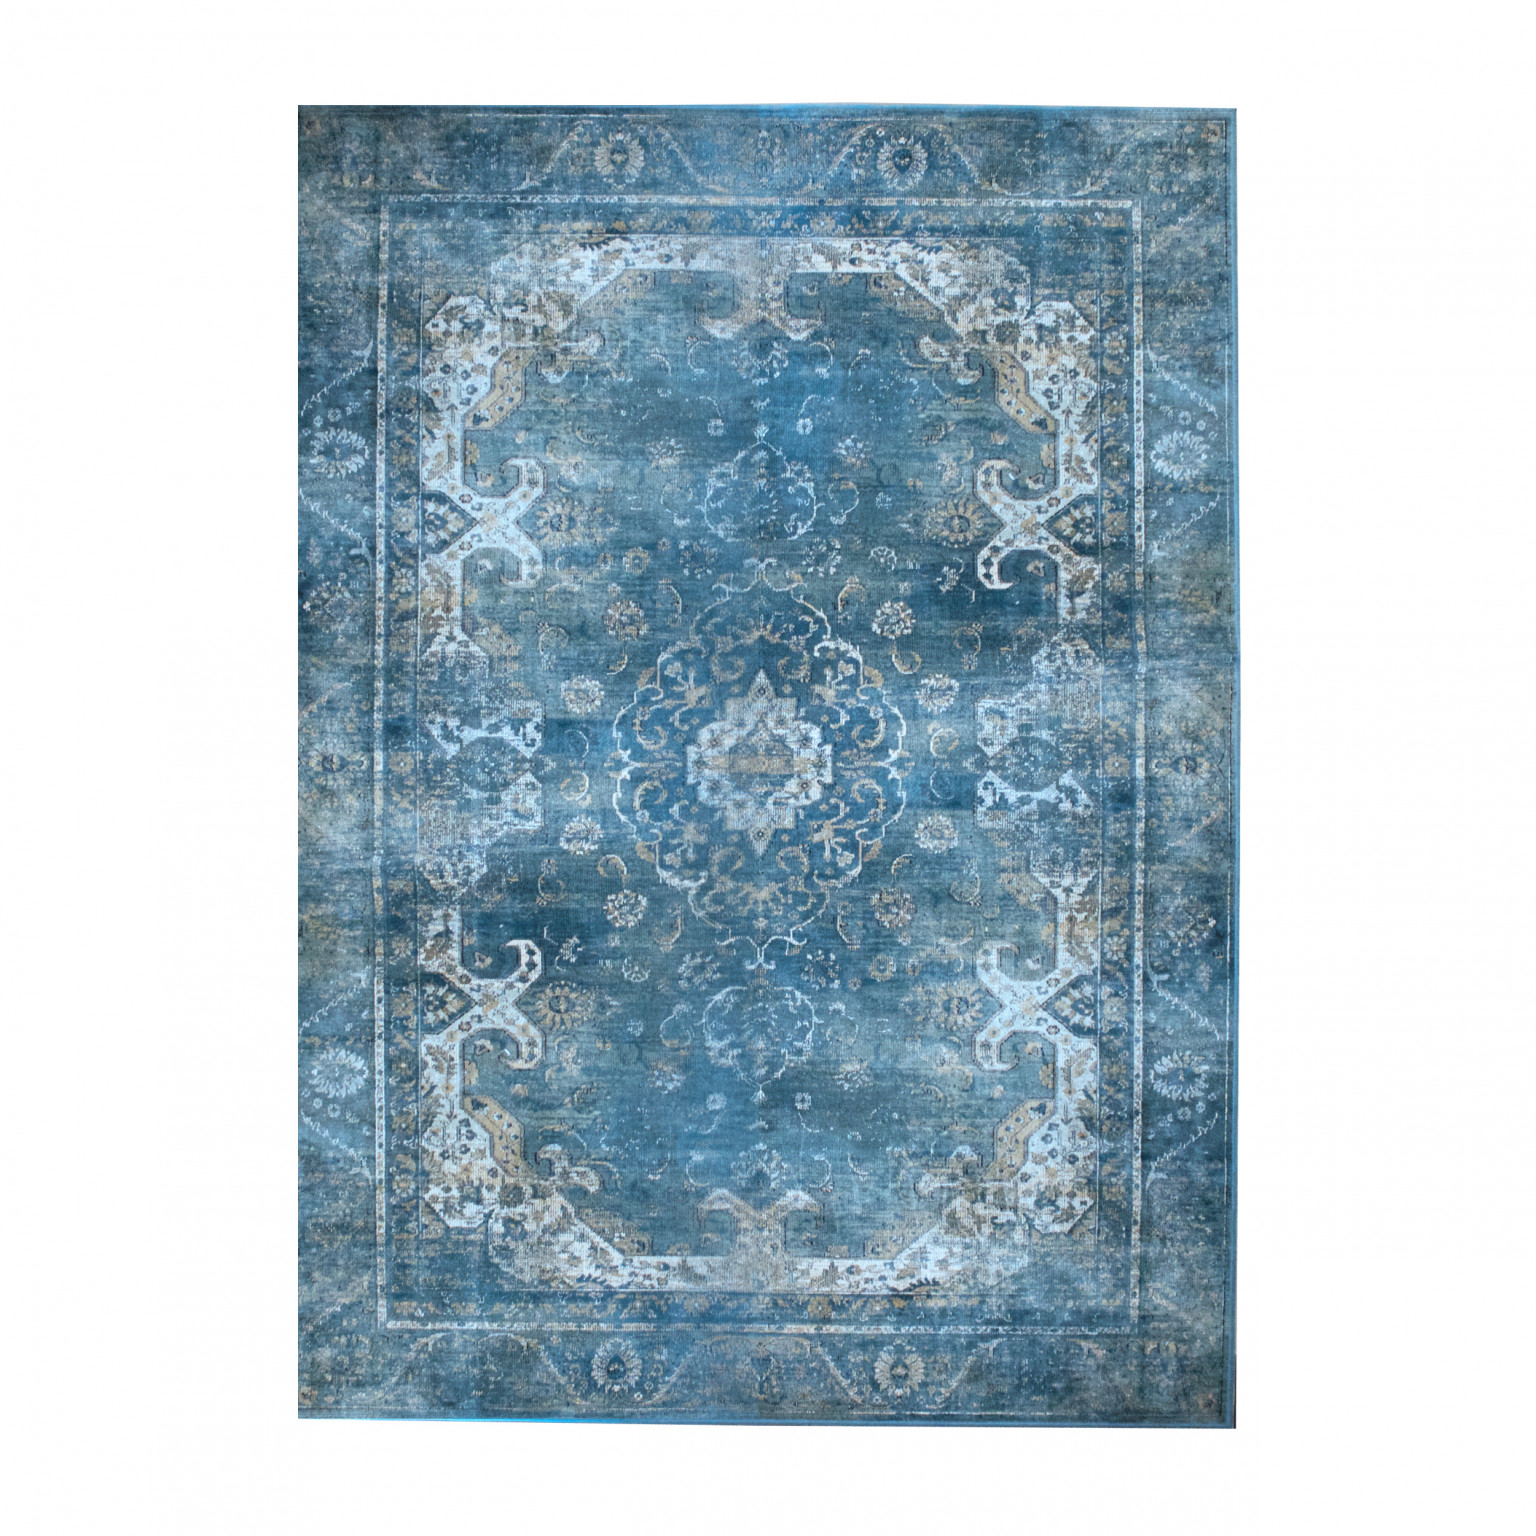 By-Boo 6171 Carpet Liv Turquoise 160x230cm